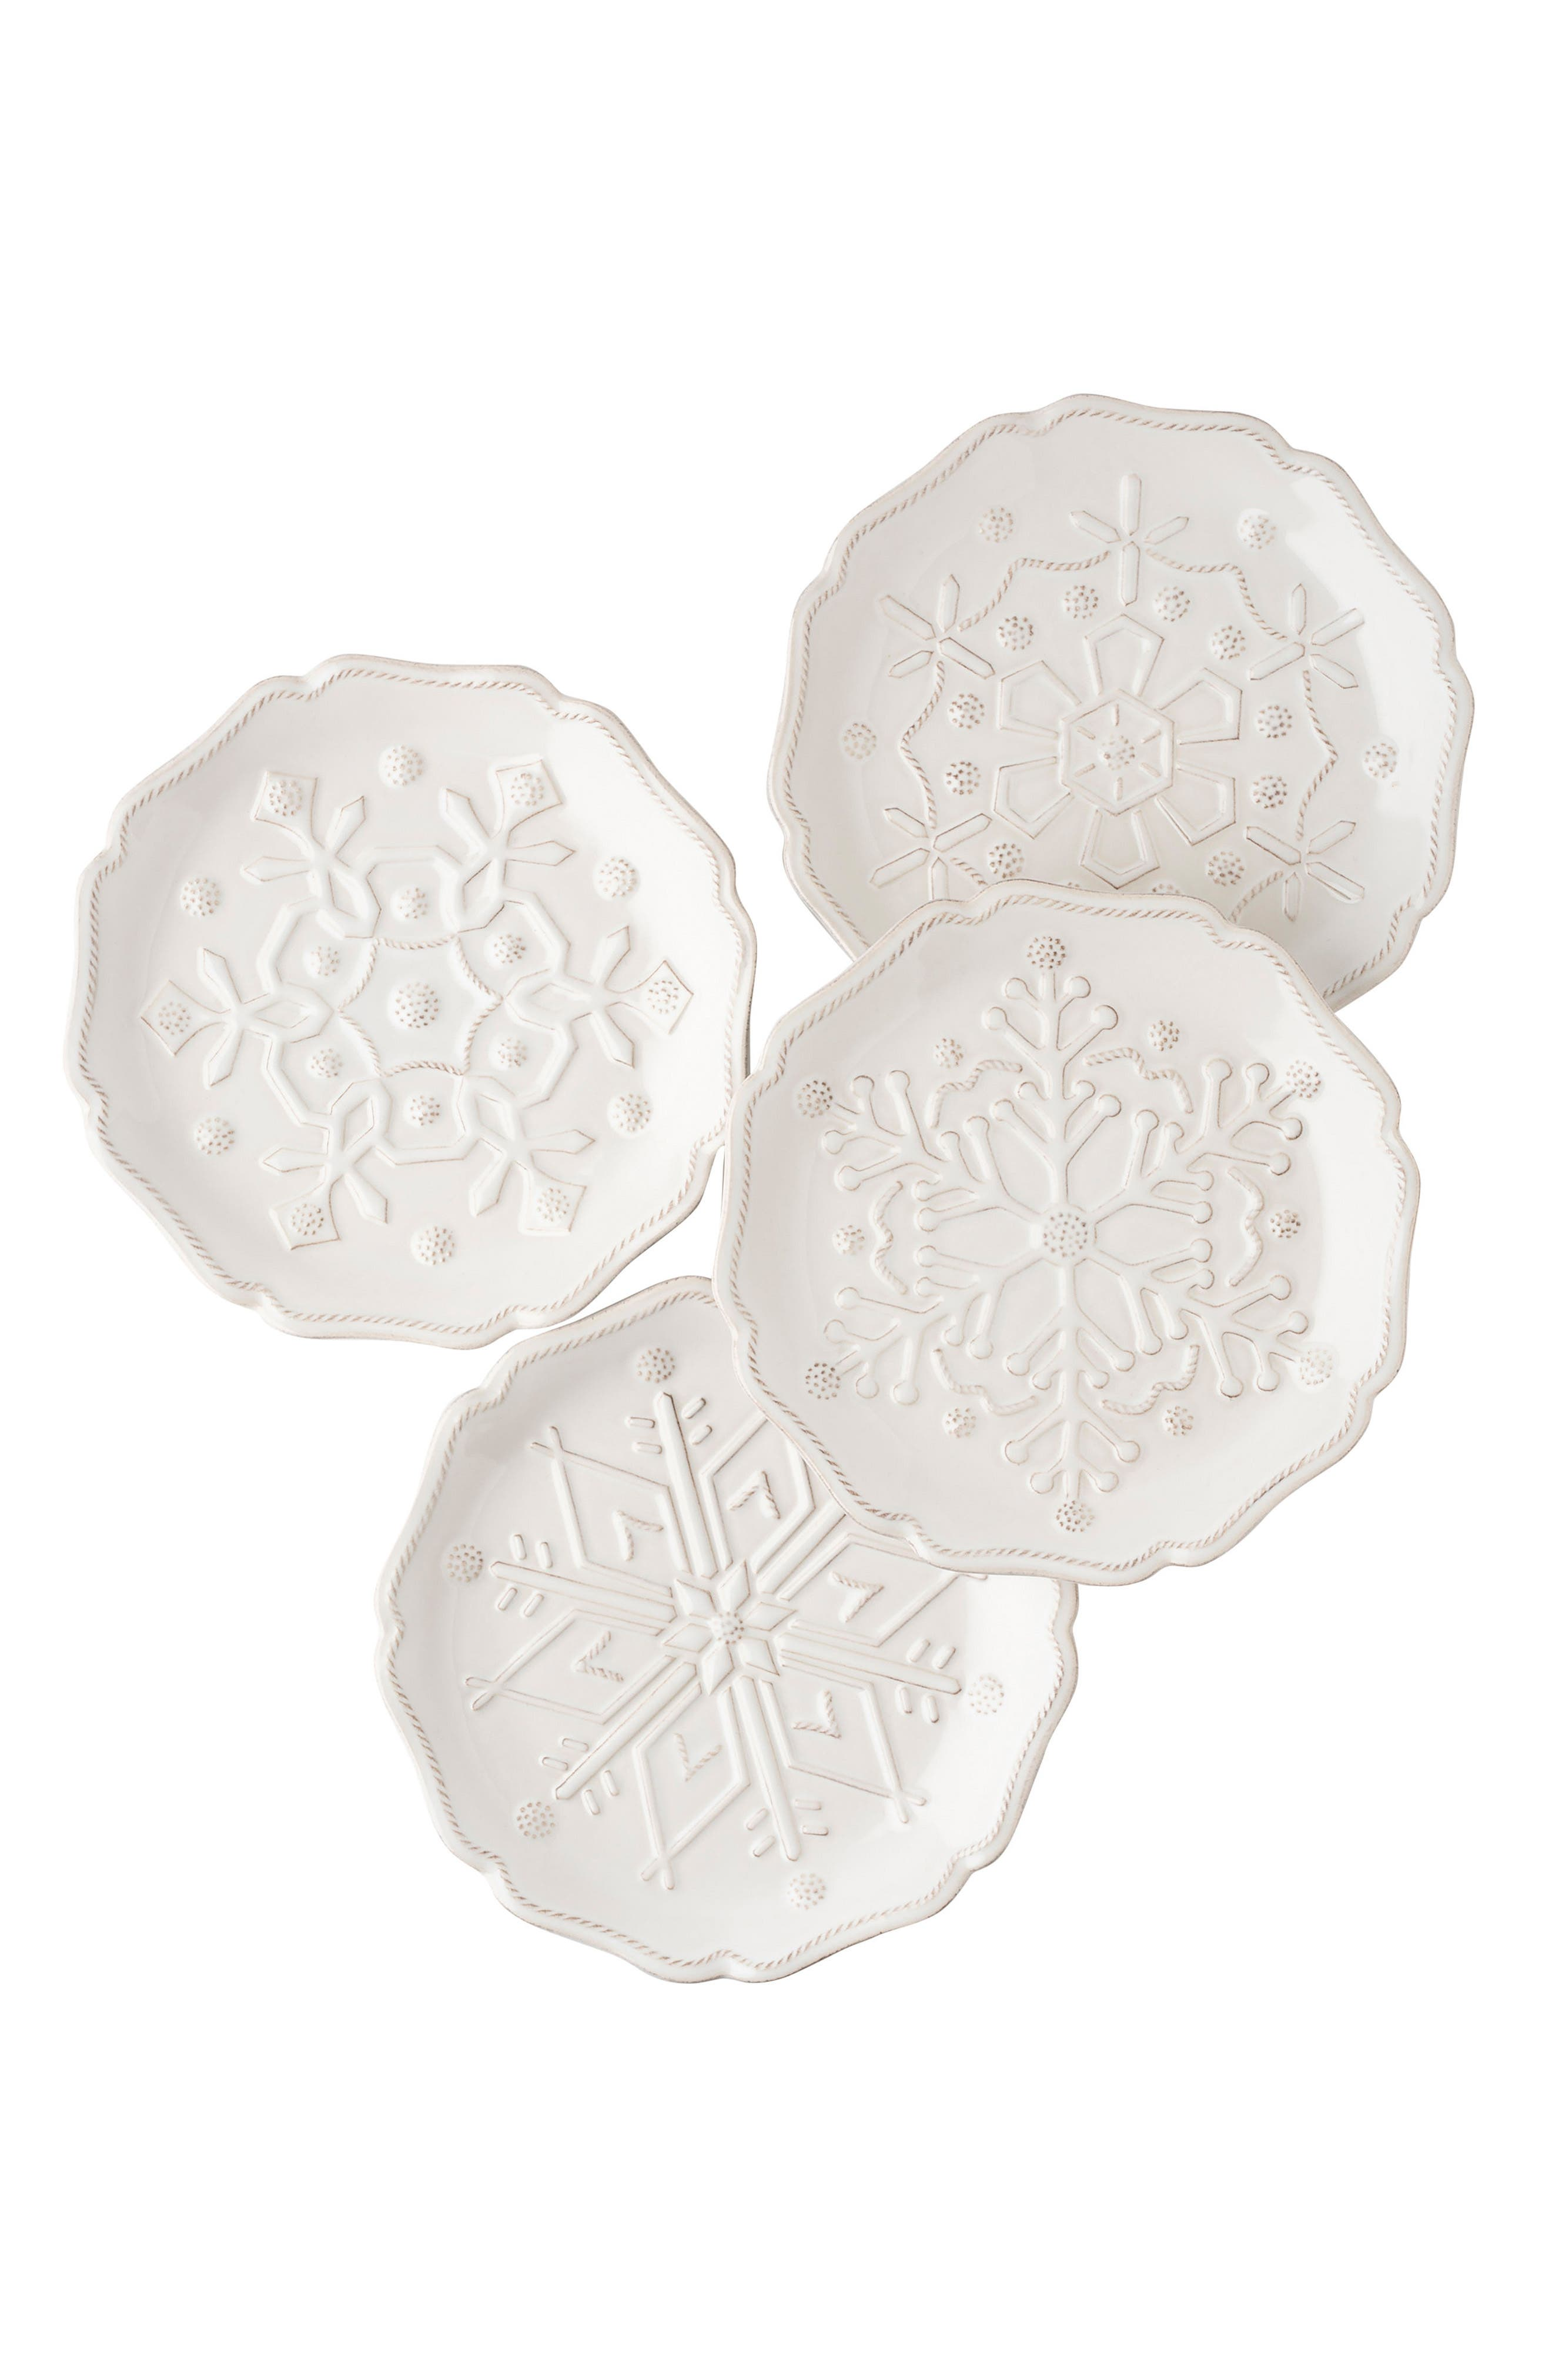 Snowfall Whitewash Set of 4 Ceramic Tidbit Plates,                         Main,                         color, 100